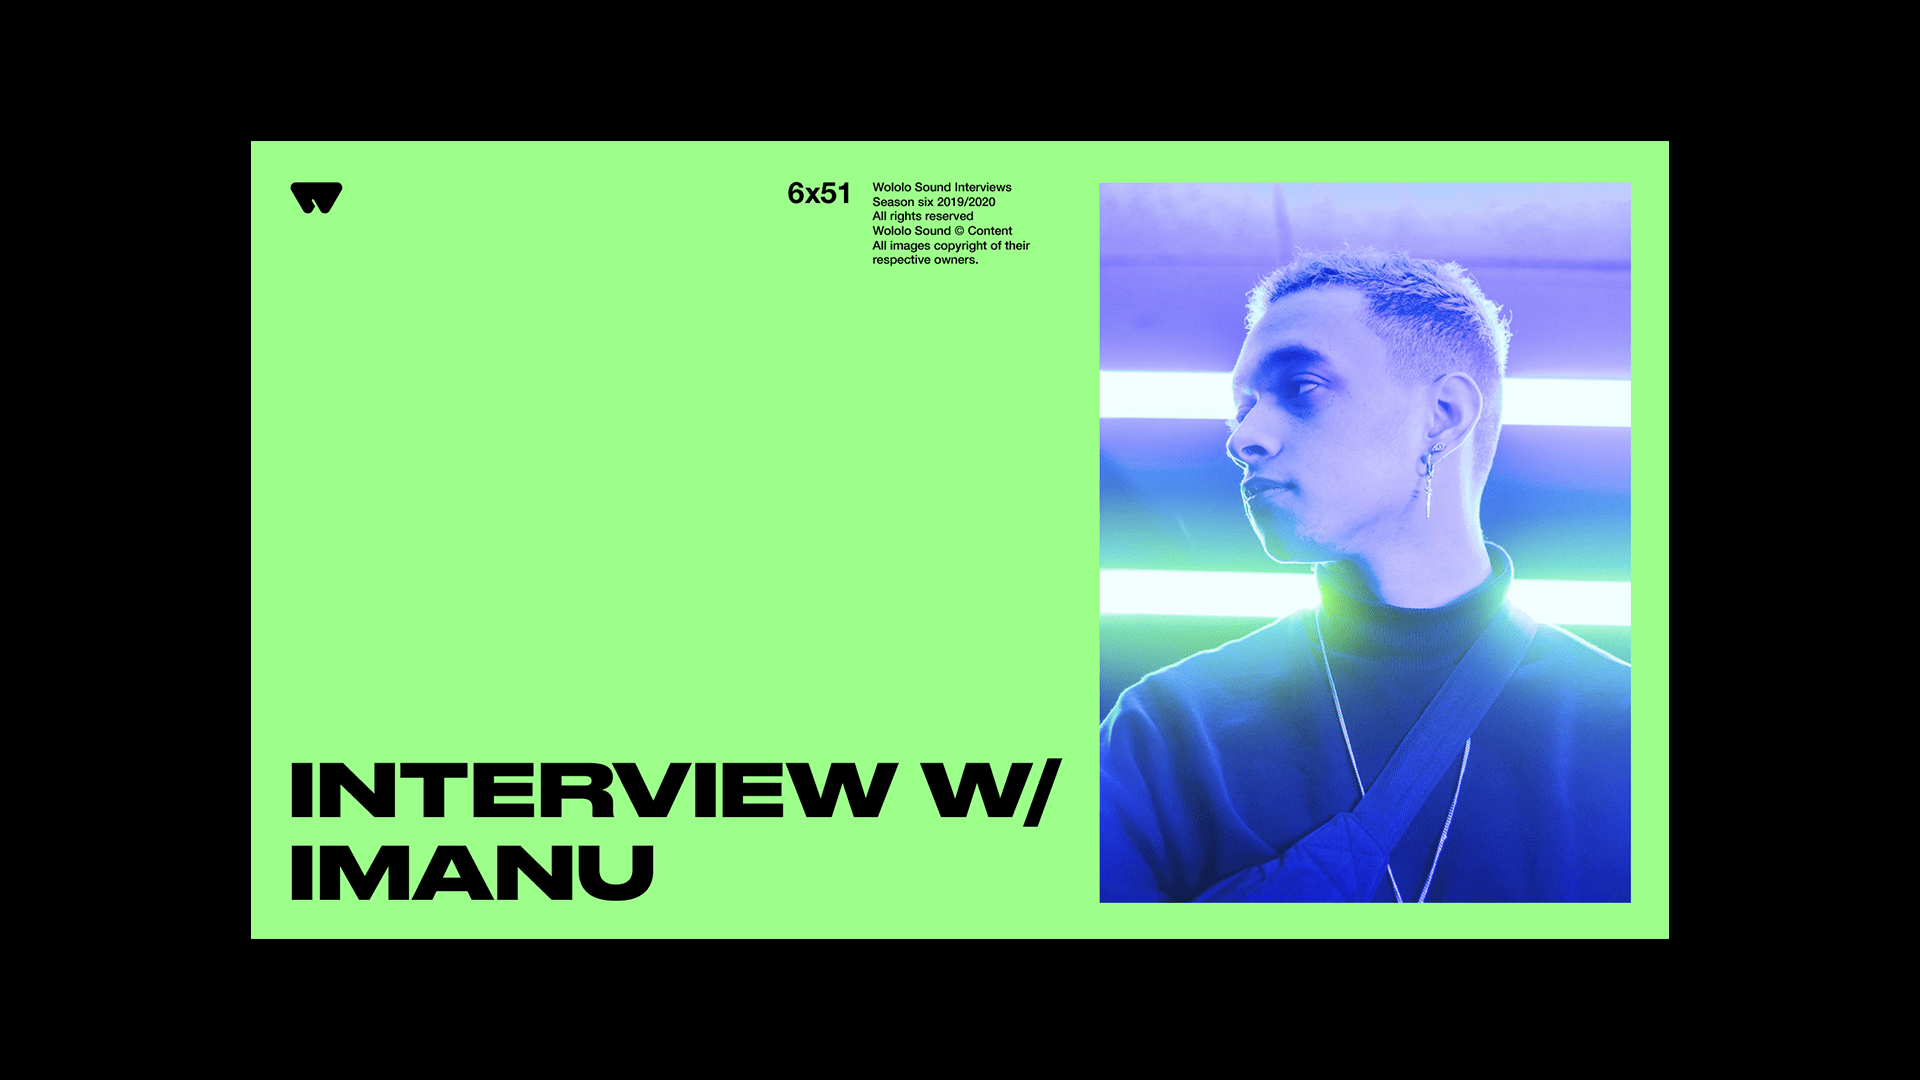 IMANU INTERVIEW